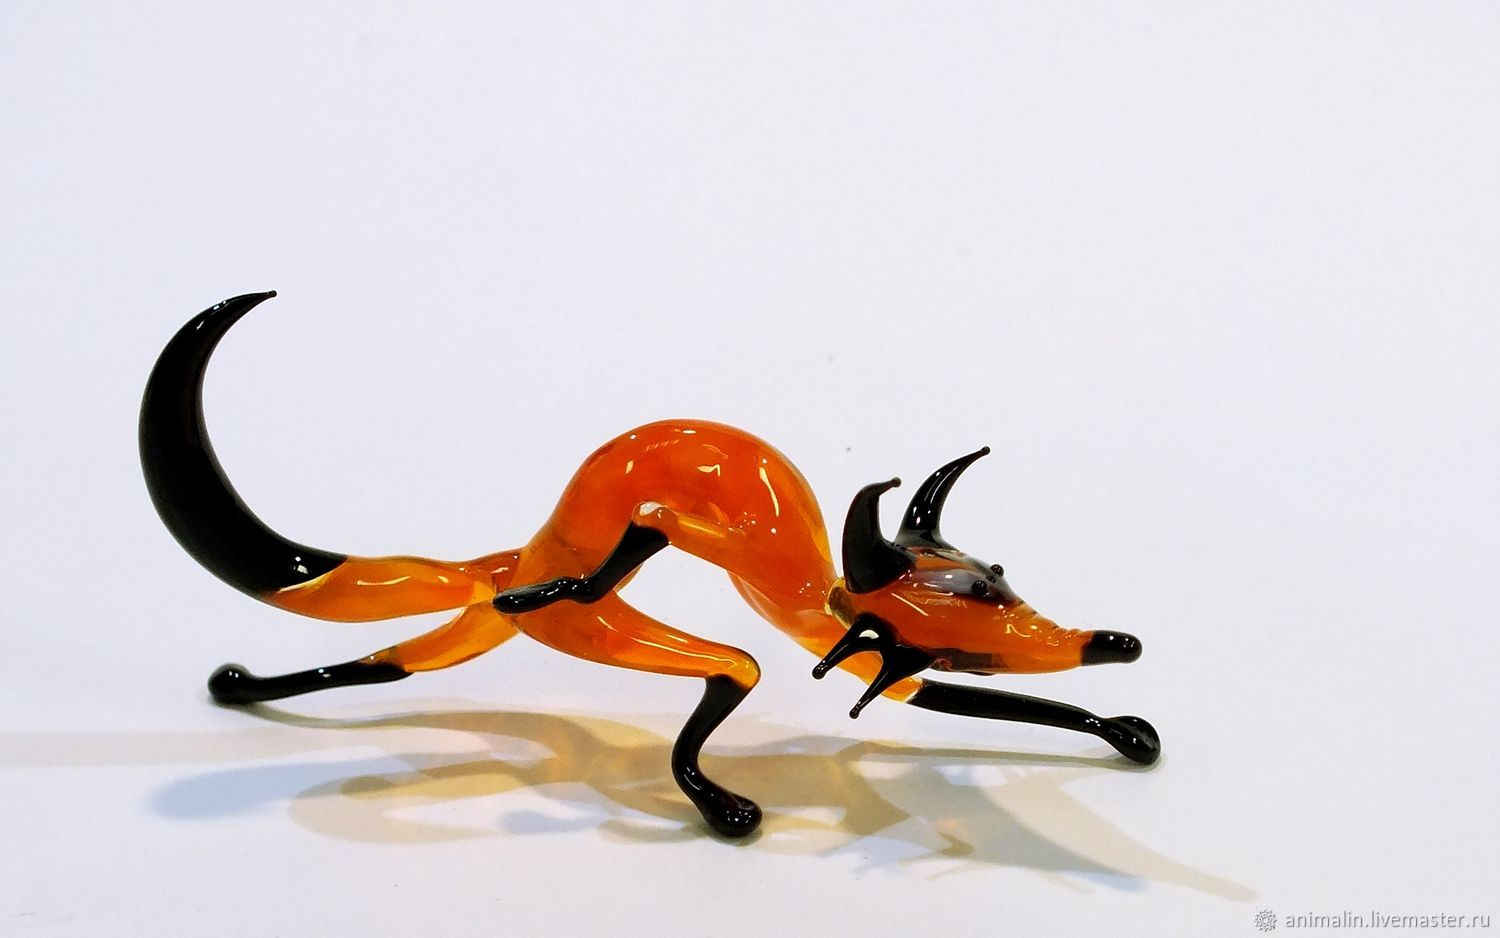 Interior colored glass figurine of Brer Fox, Figurines, Moscow,  Фото №1